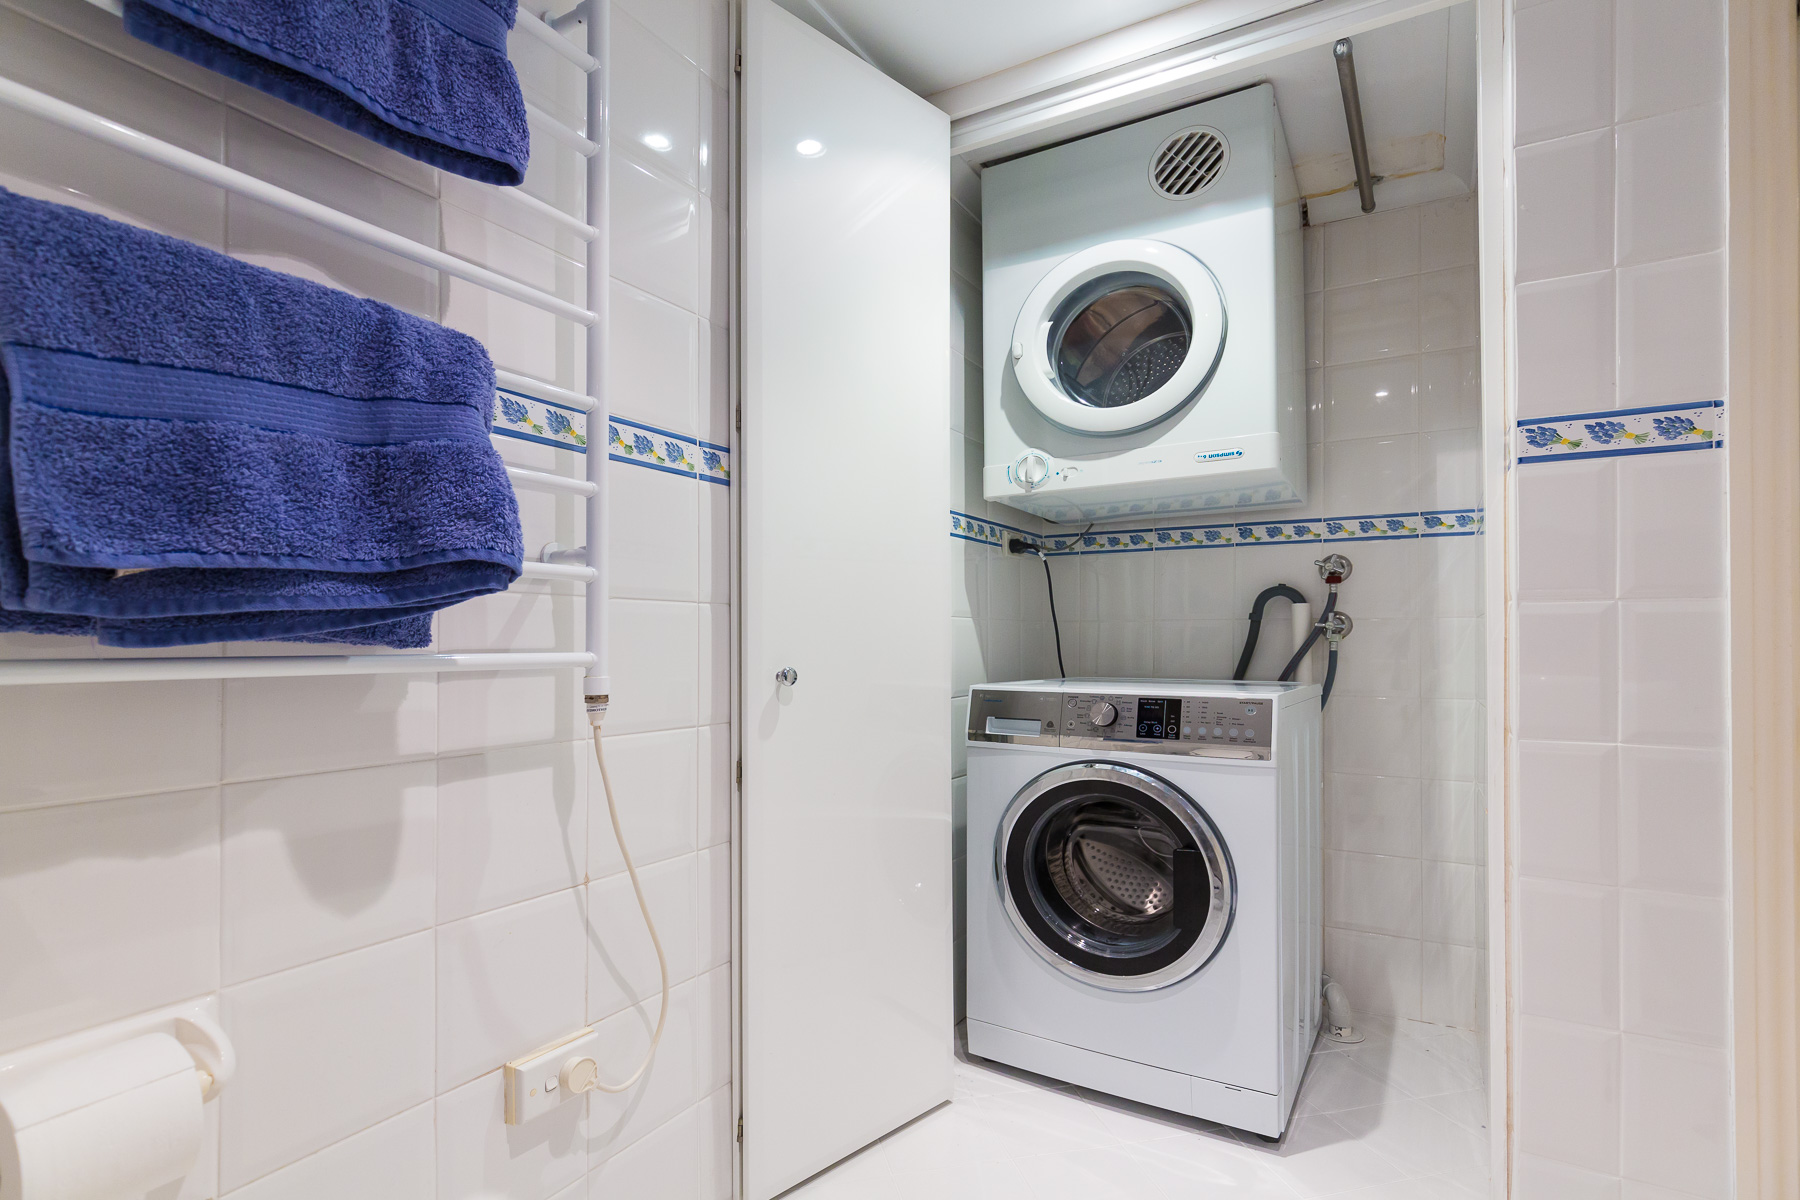 Washer and dryer in the second bathroom.